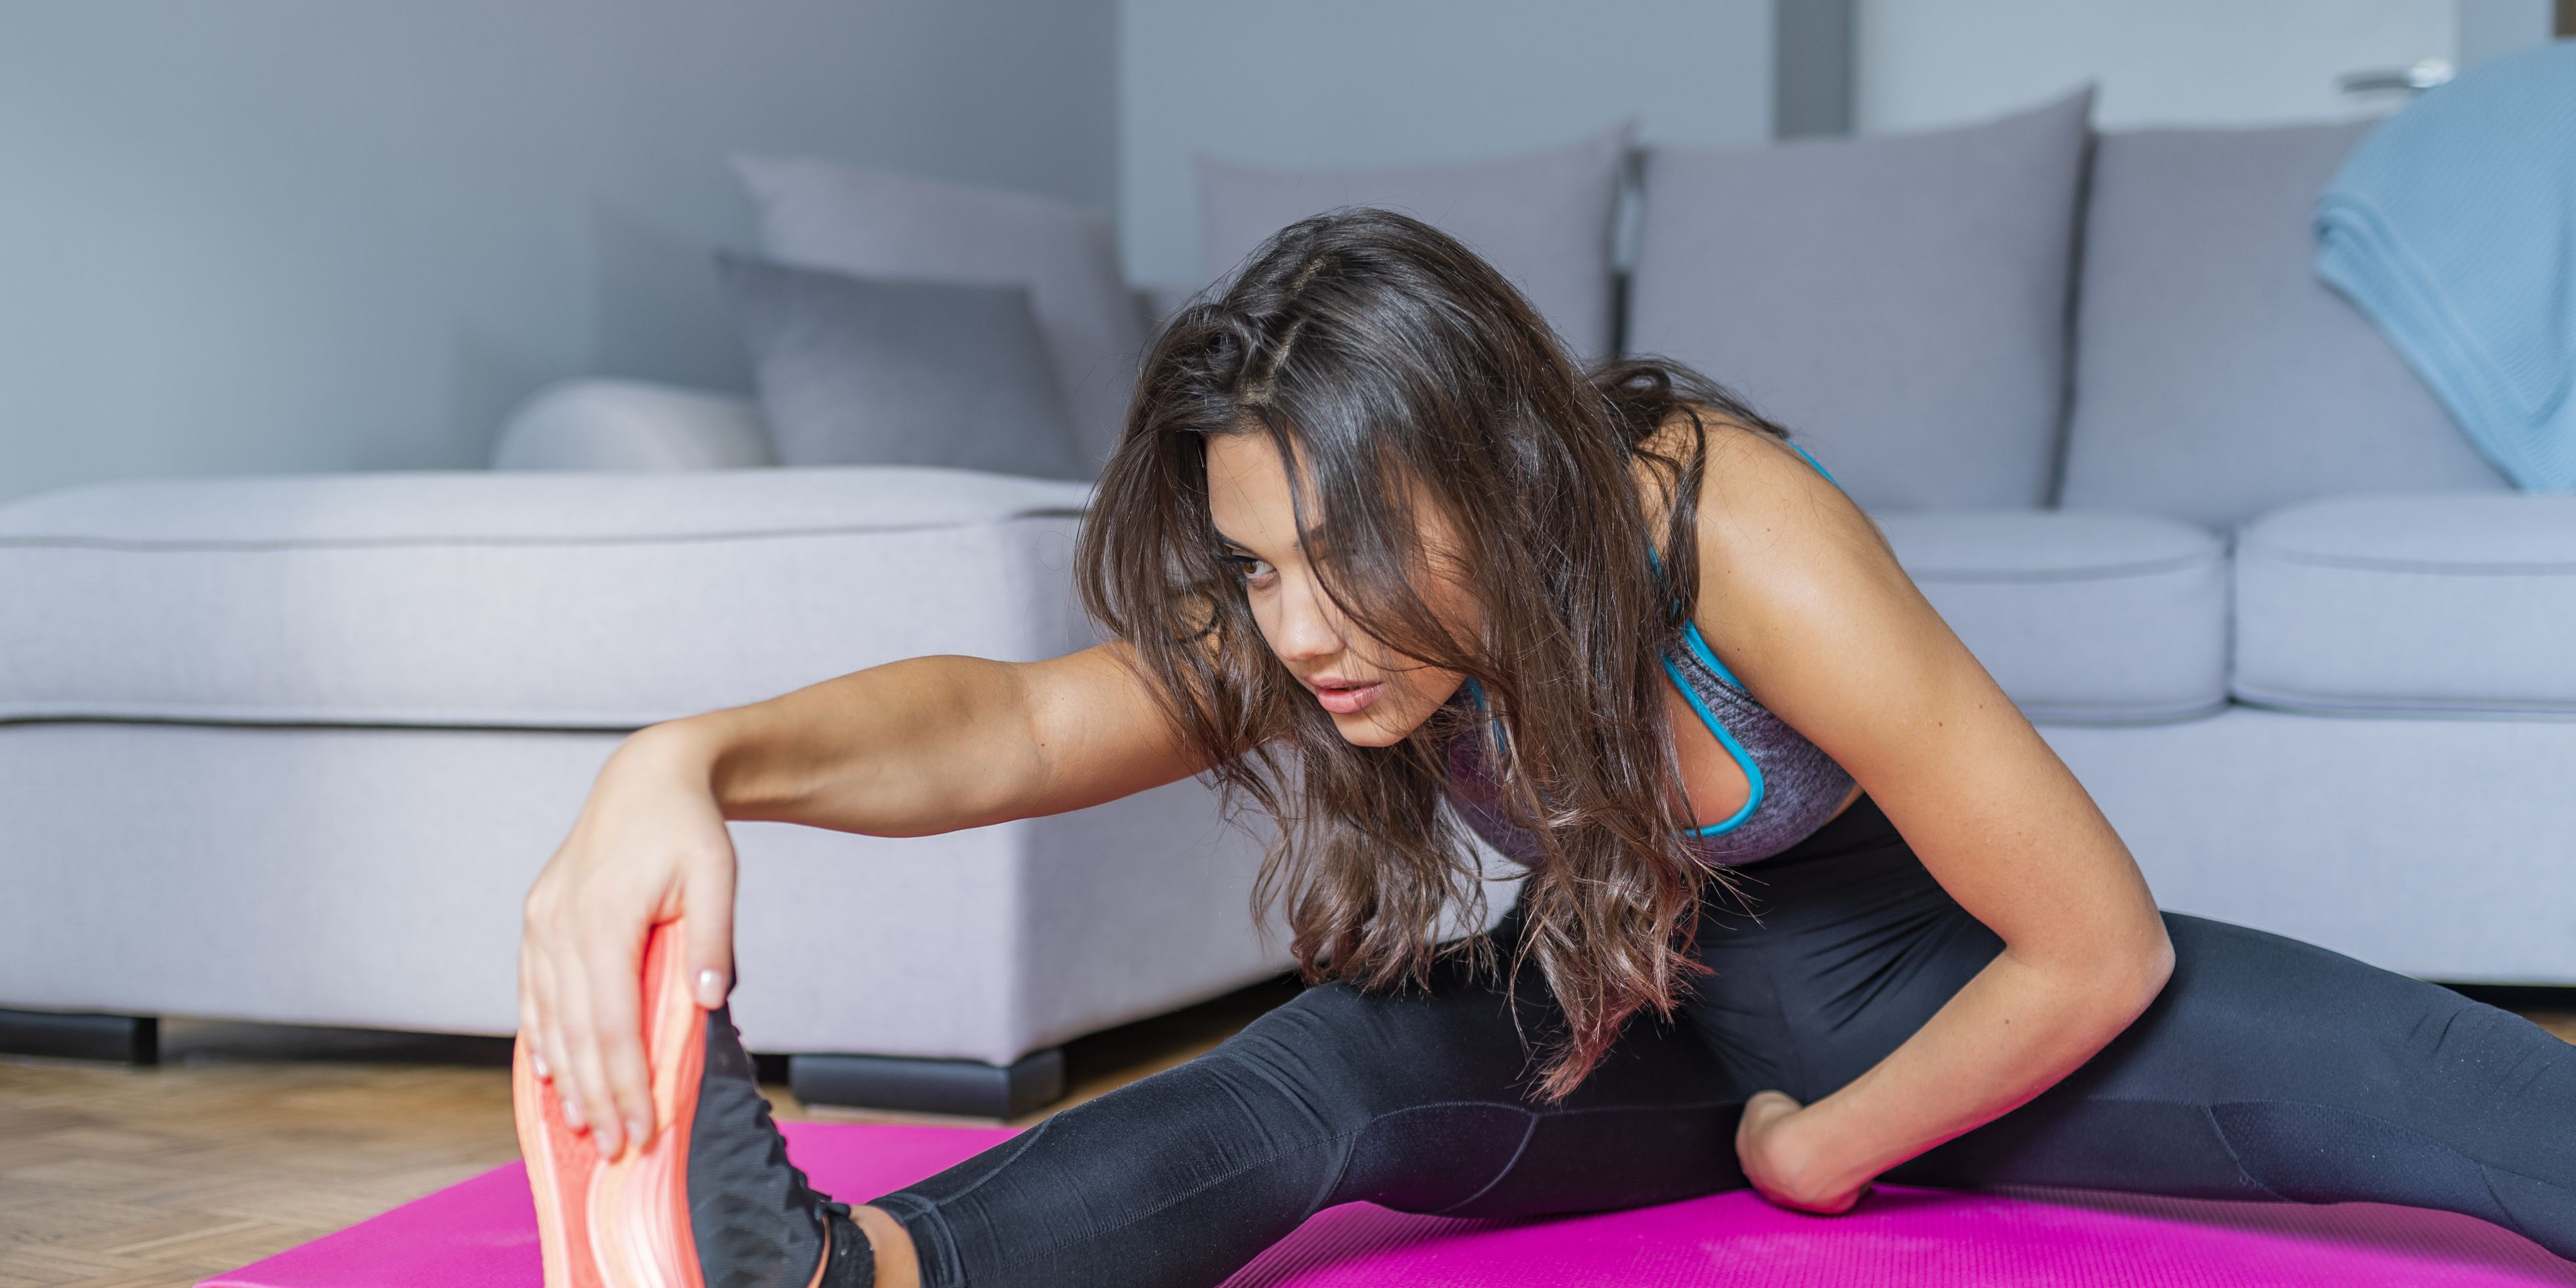 Young woman exercising at home, stretching